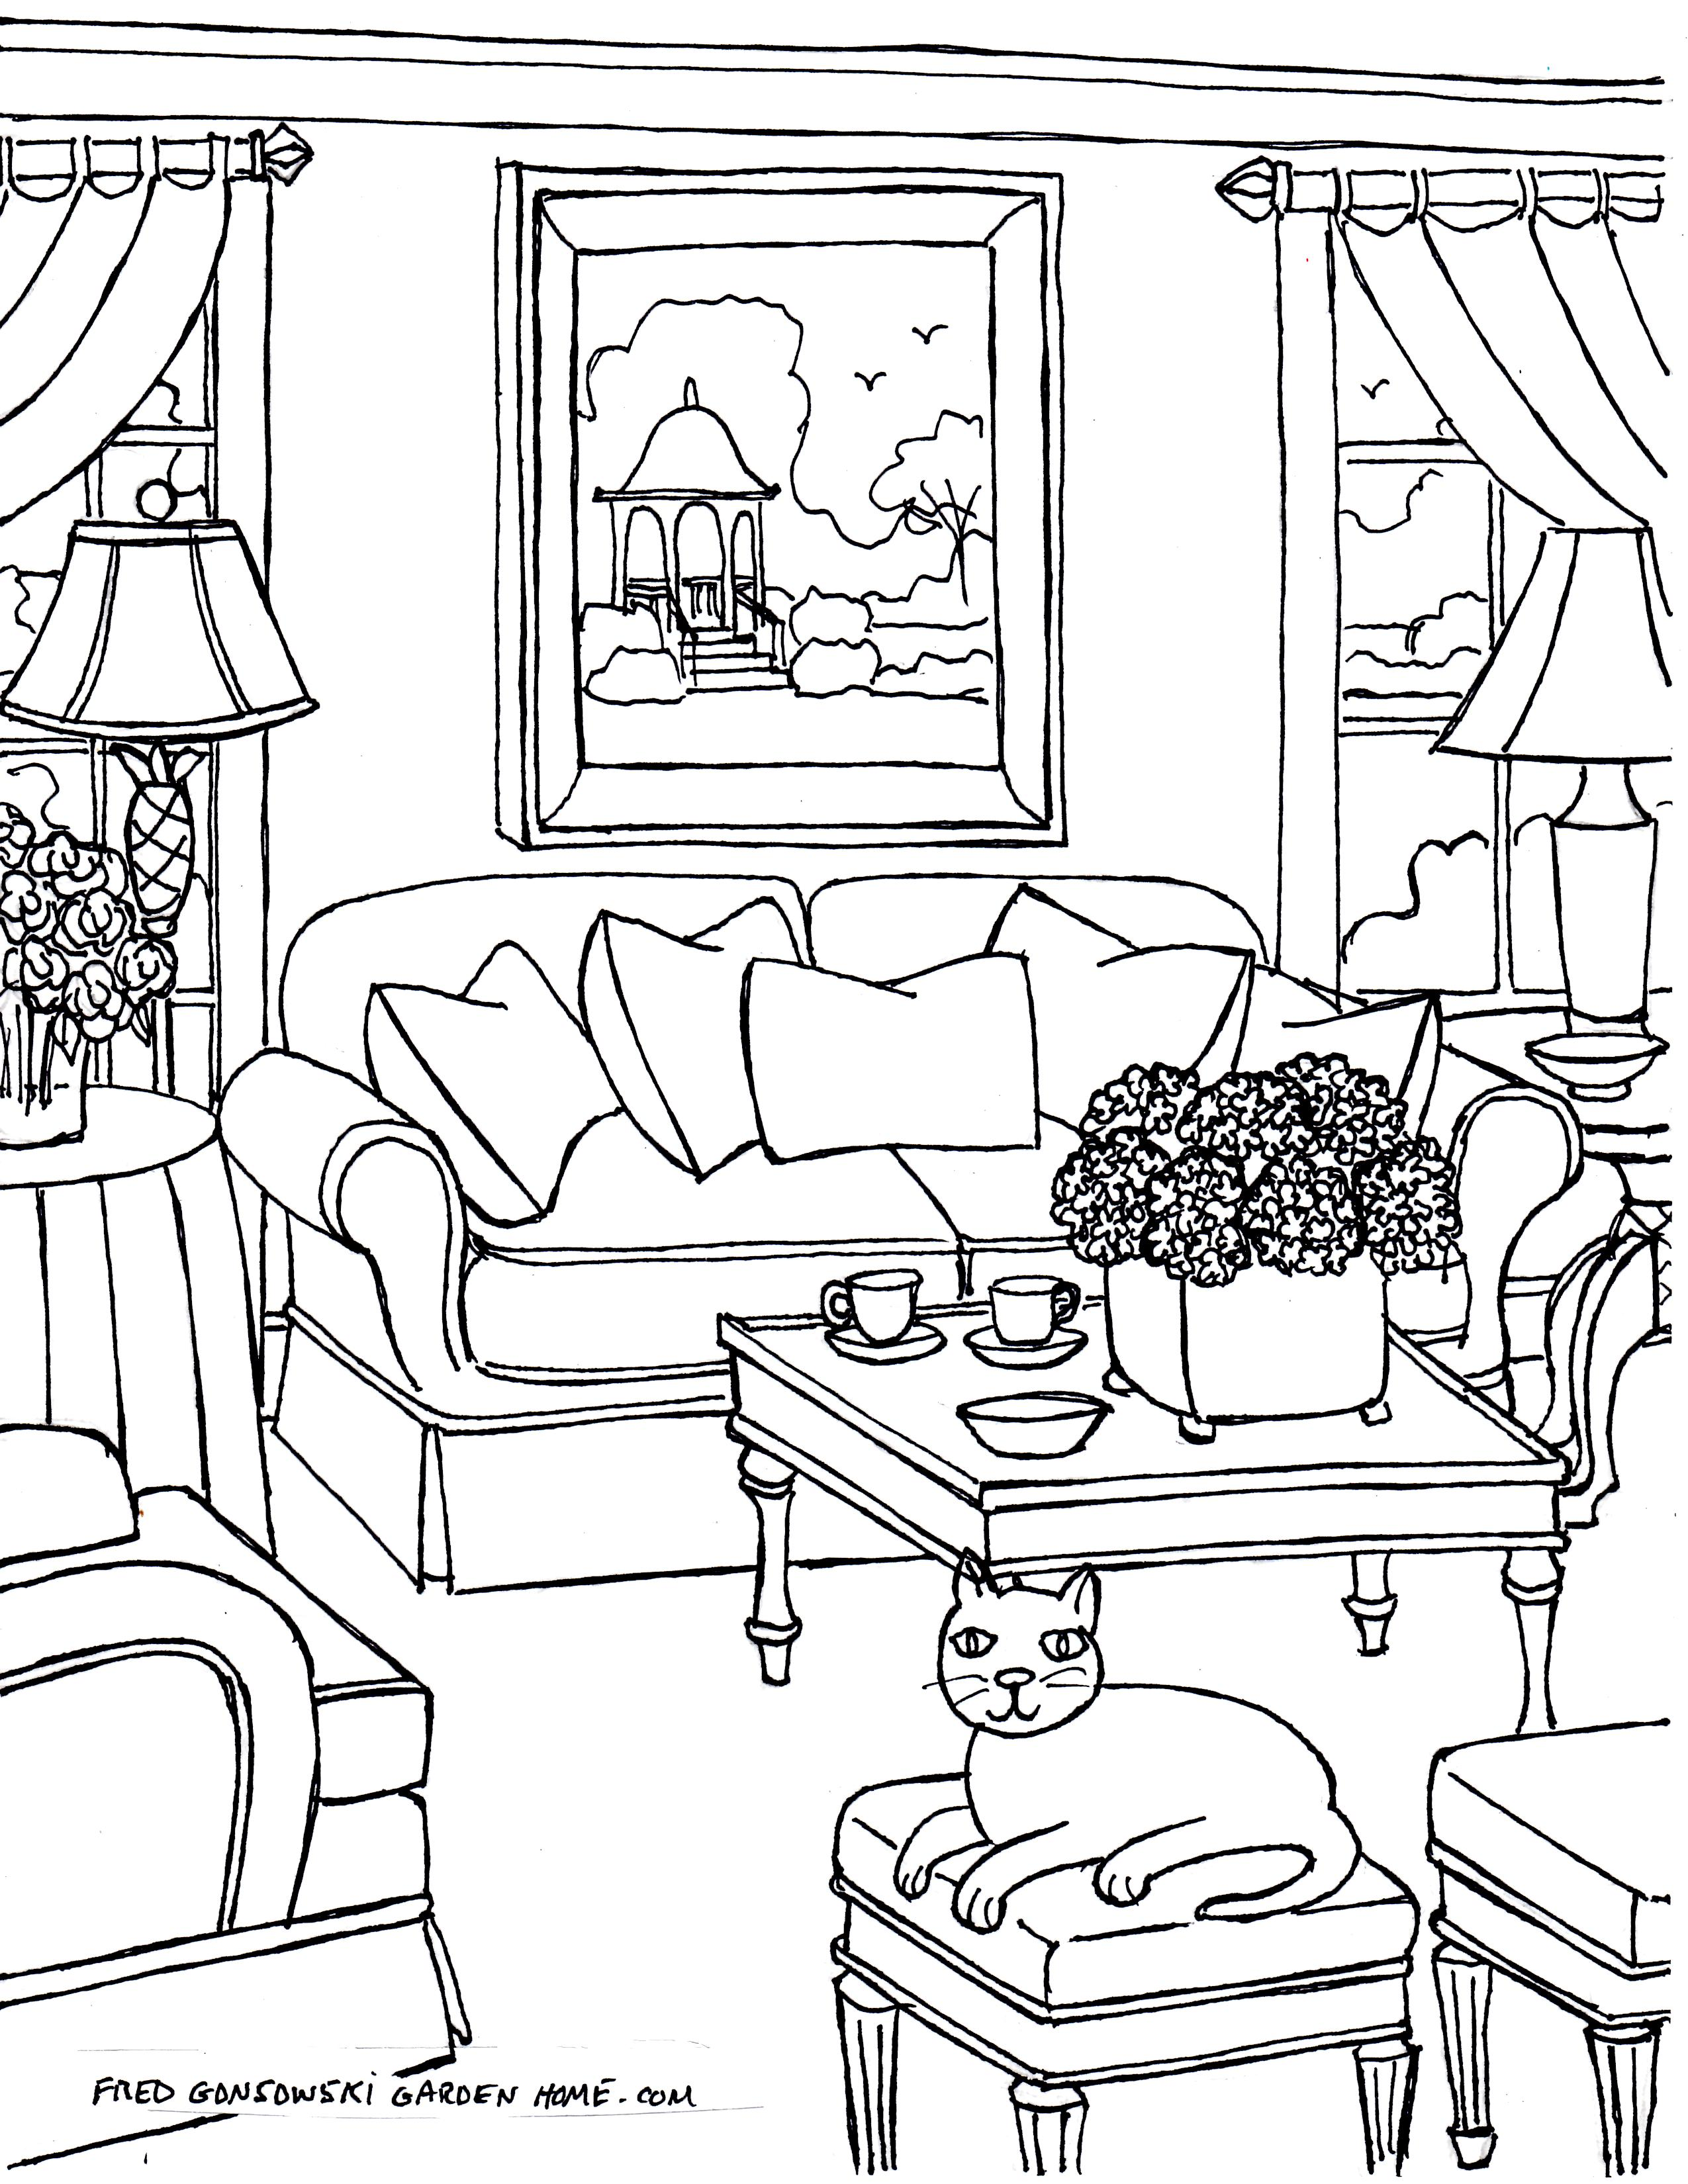 Free Bedroom Coloring Pages